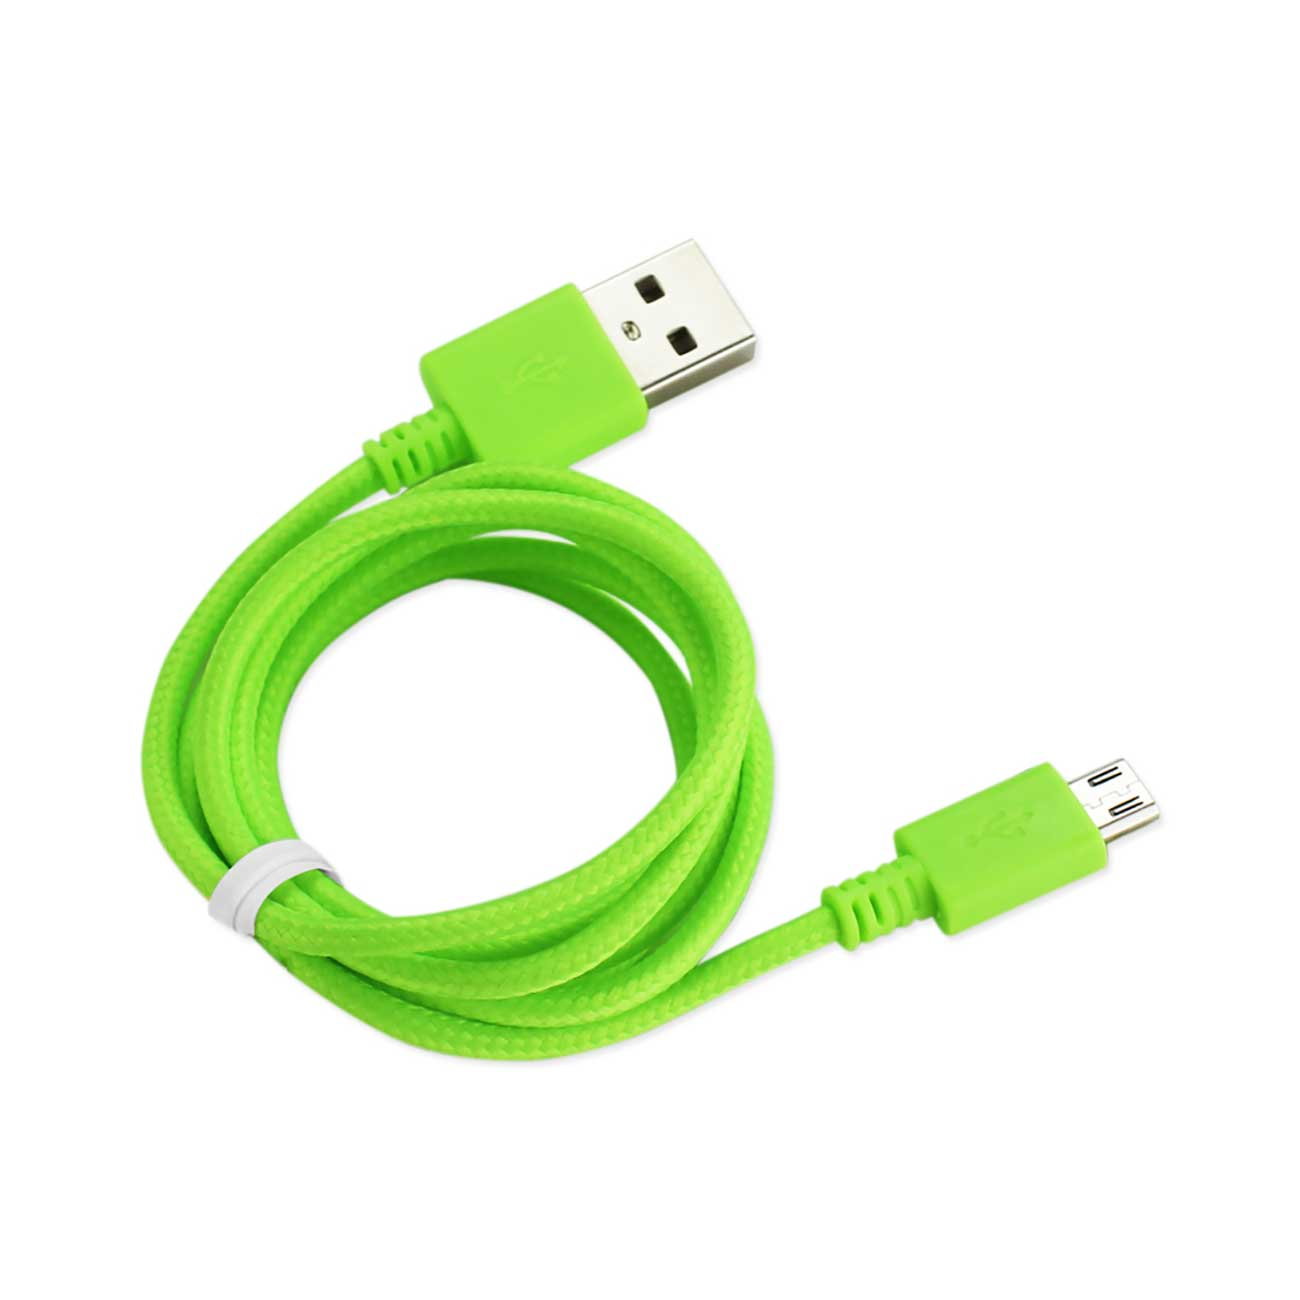 Braided Micro Usb Data Cable 3.3 Feet In Green